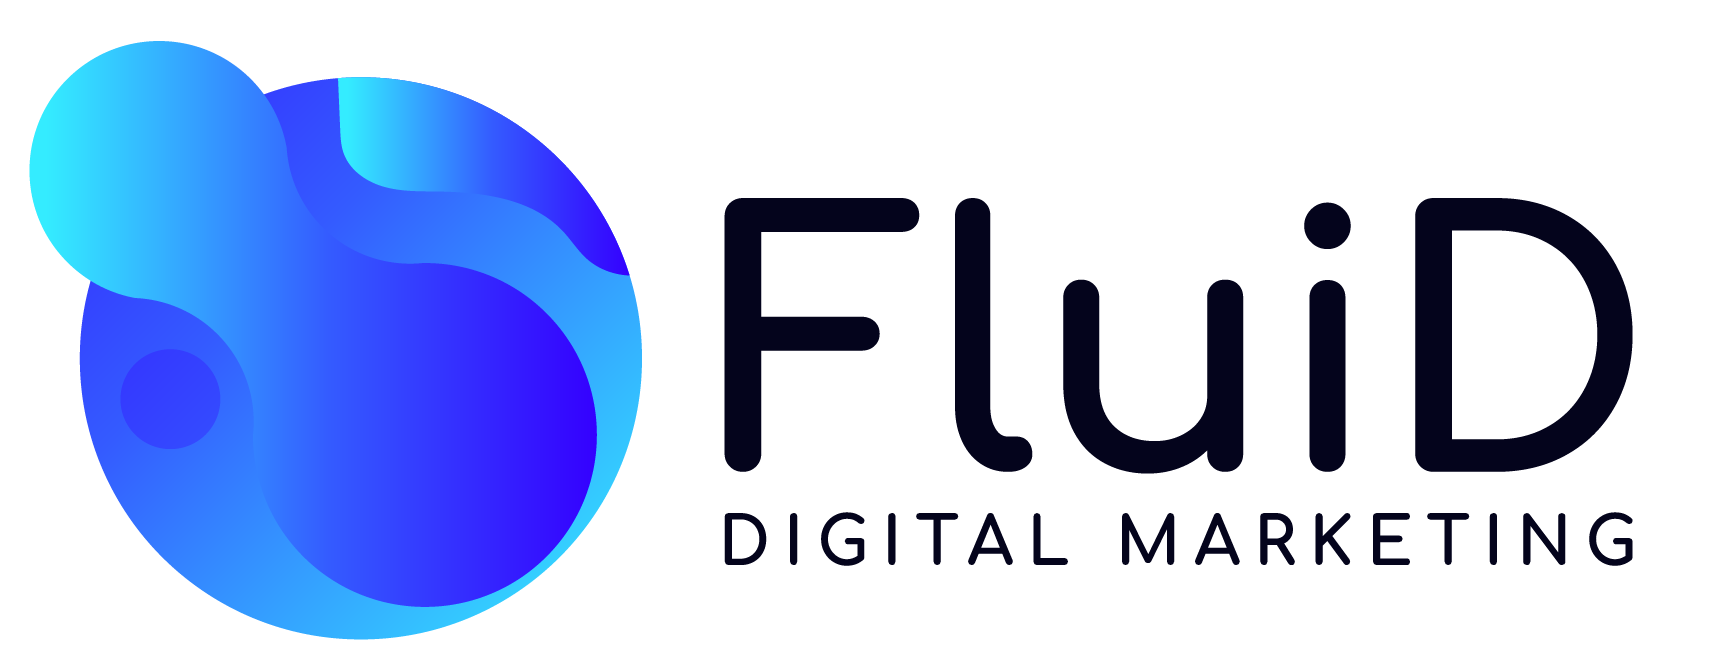 Fluid Digital Marketing